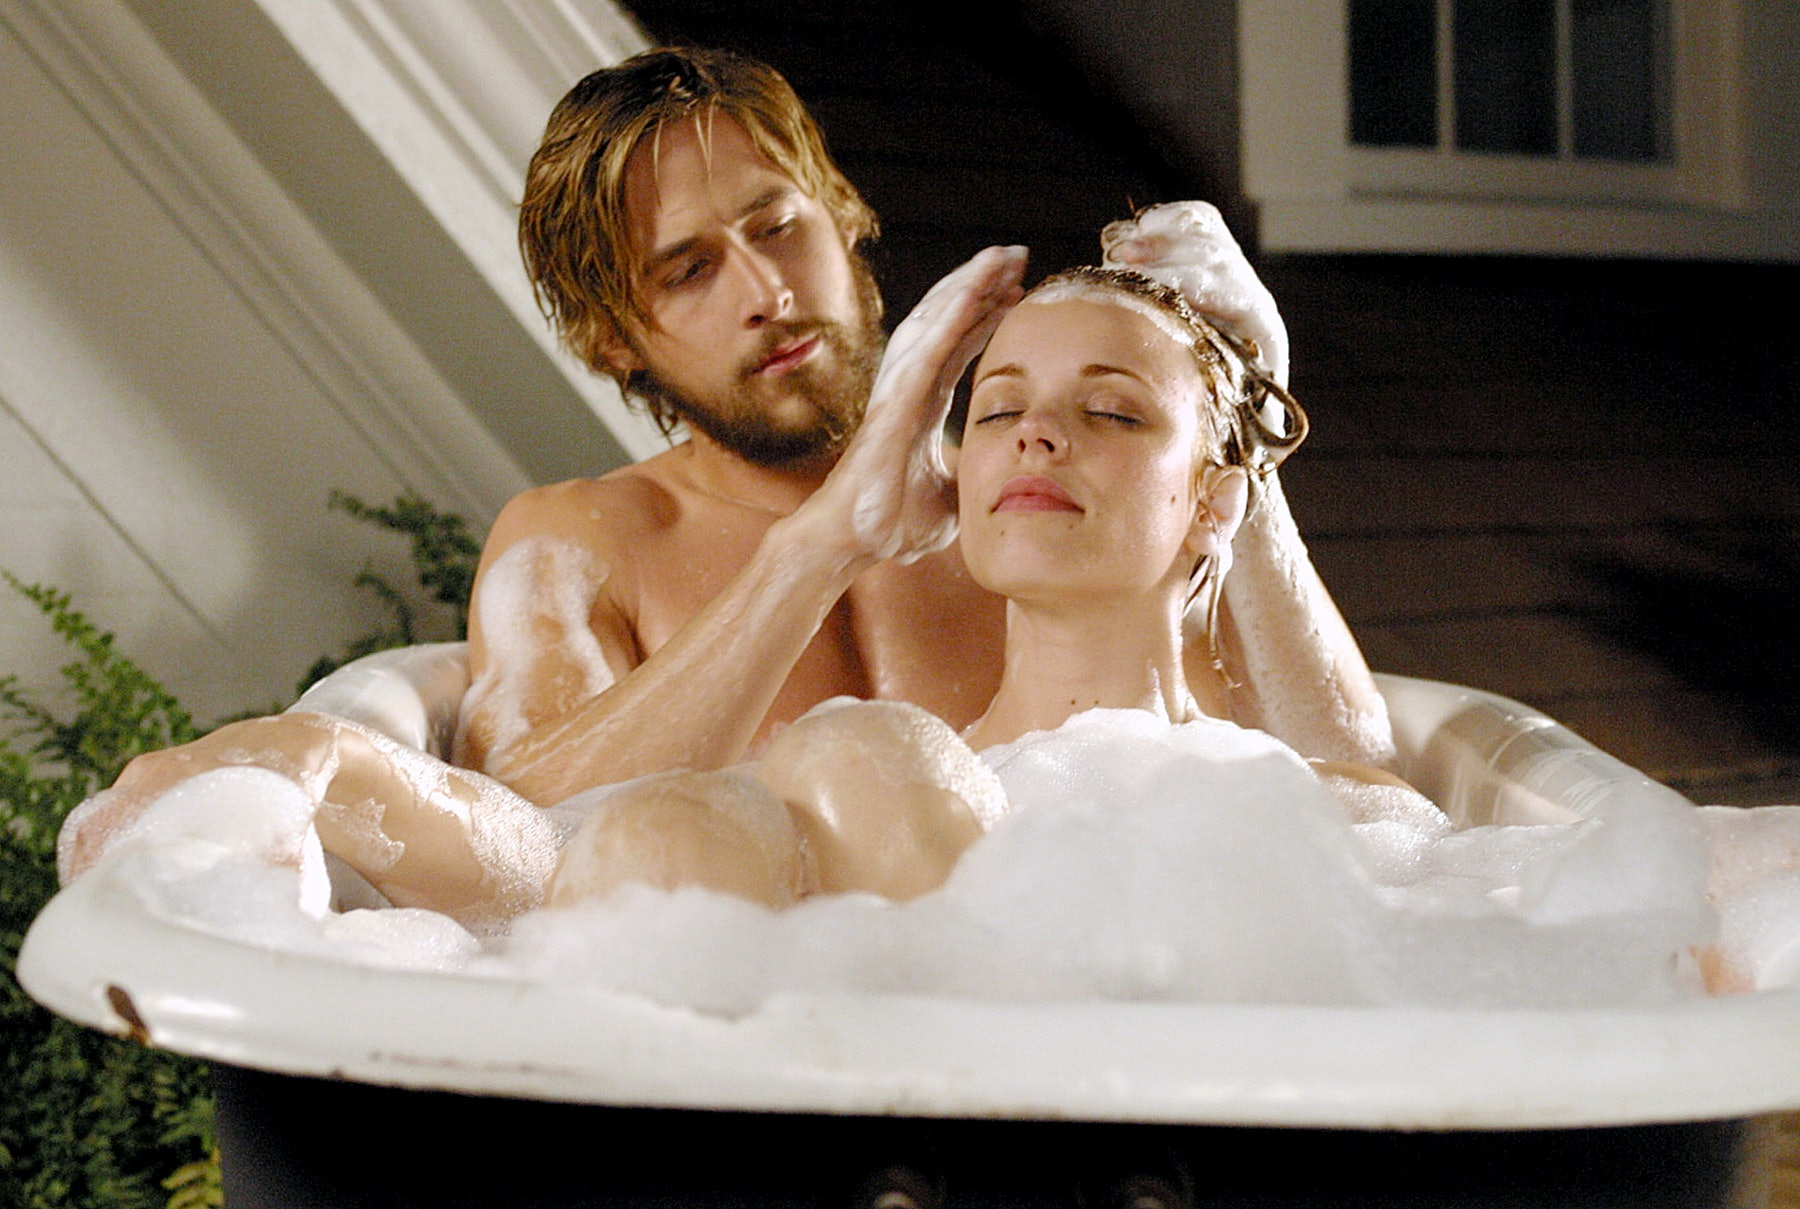 Female sex in hot tubs